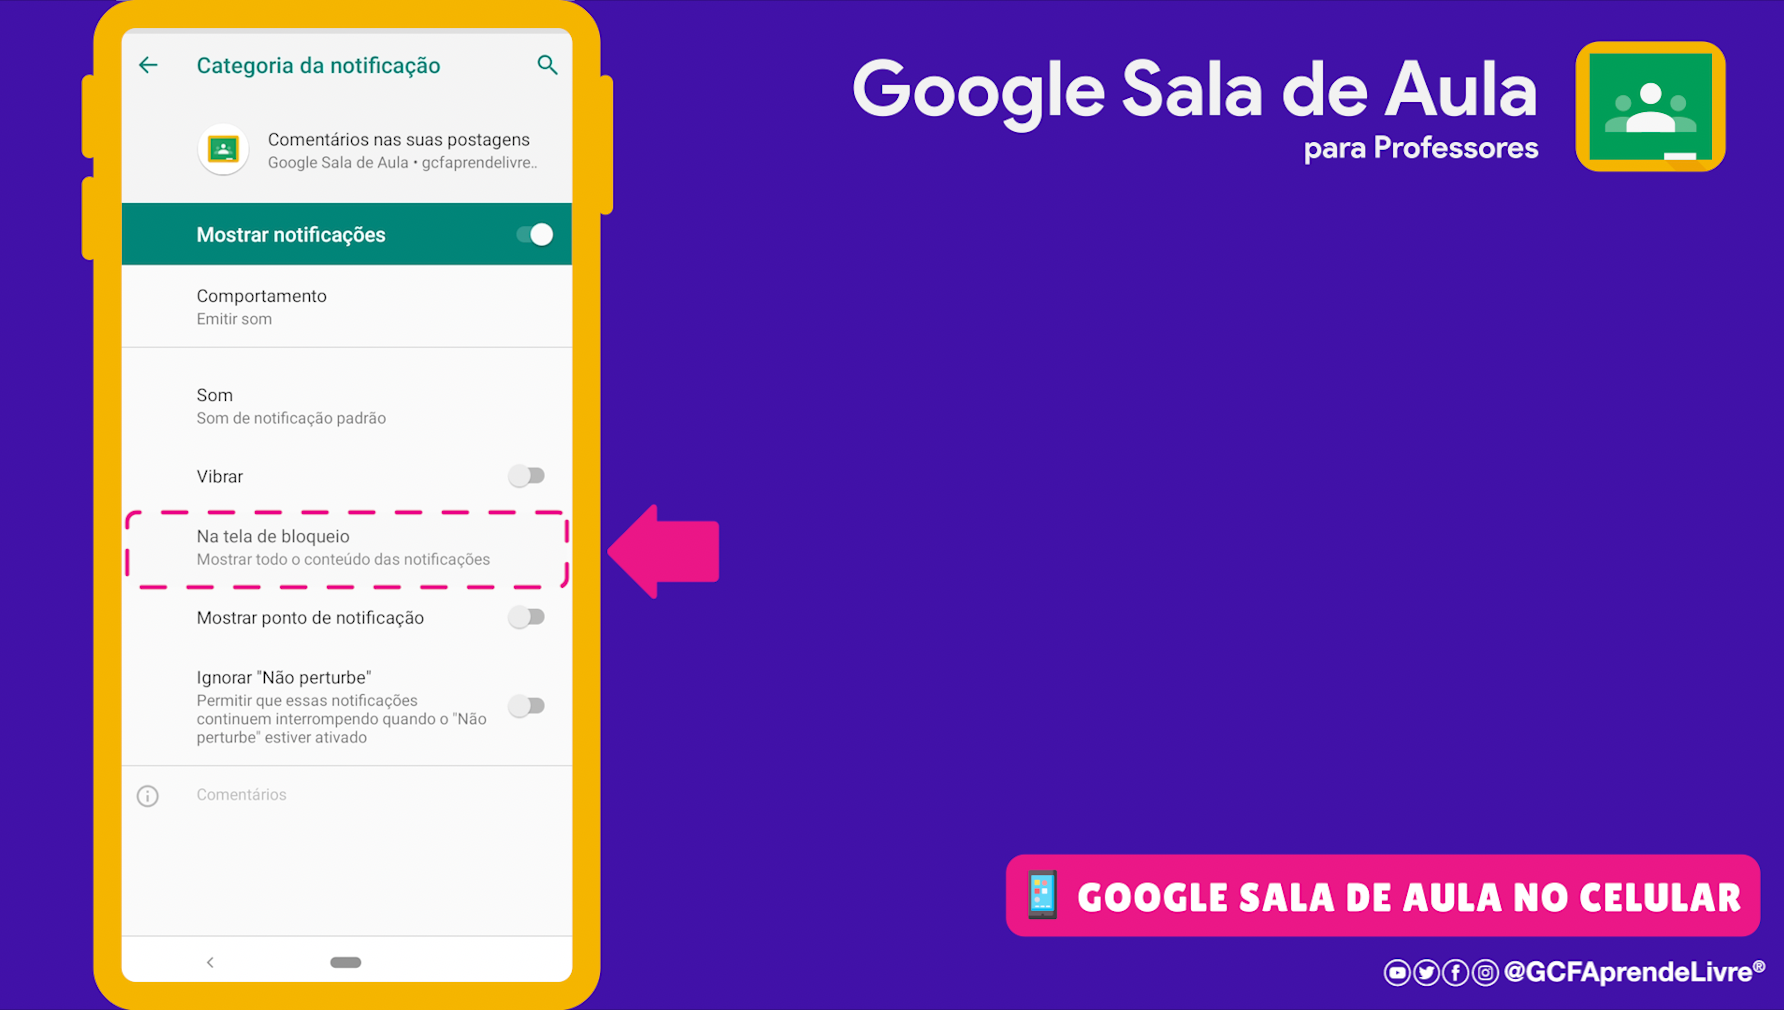 como ativar ou desativar as notificações do Google Sala de Aula 10